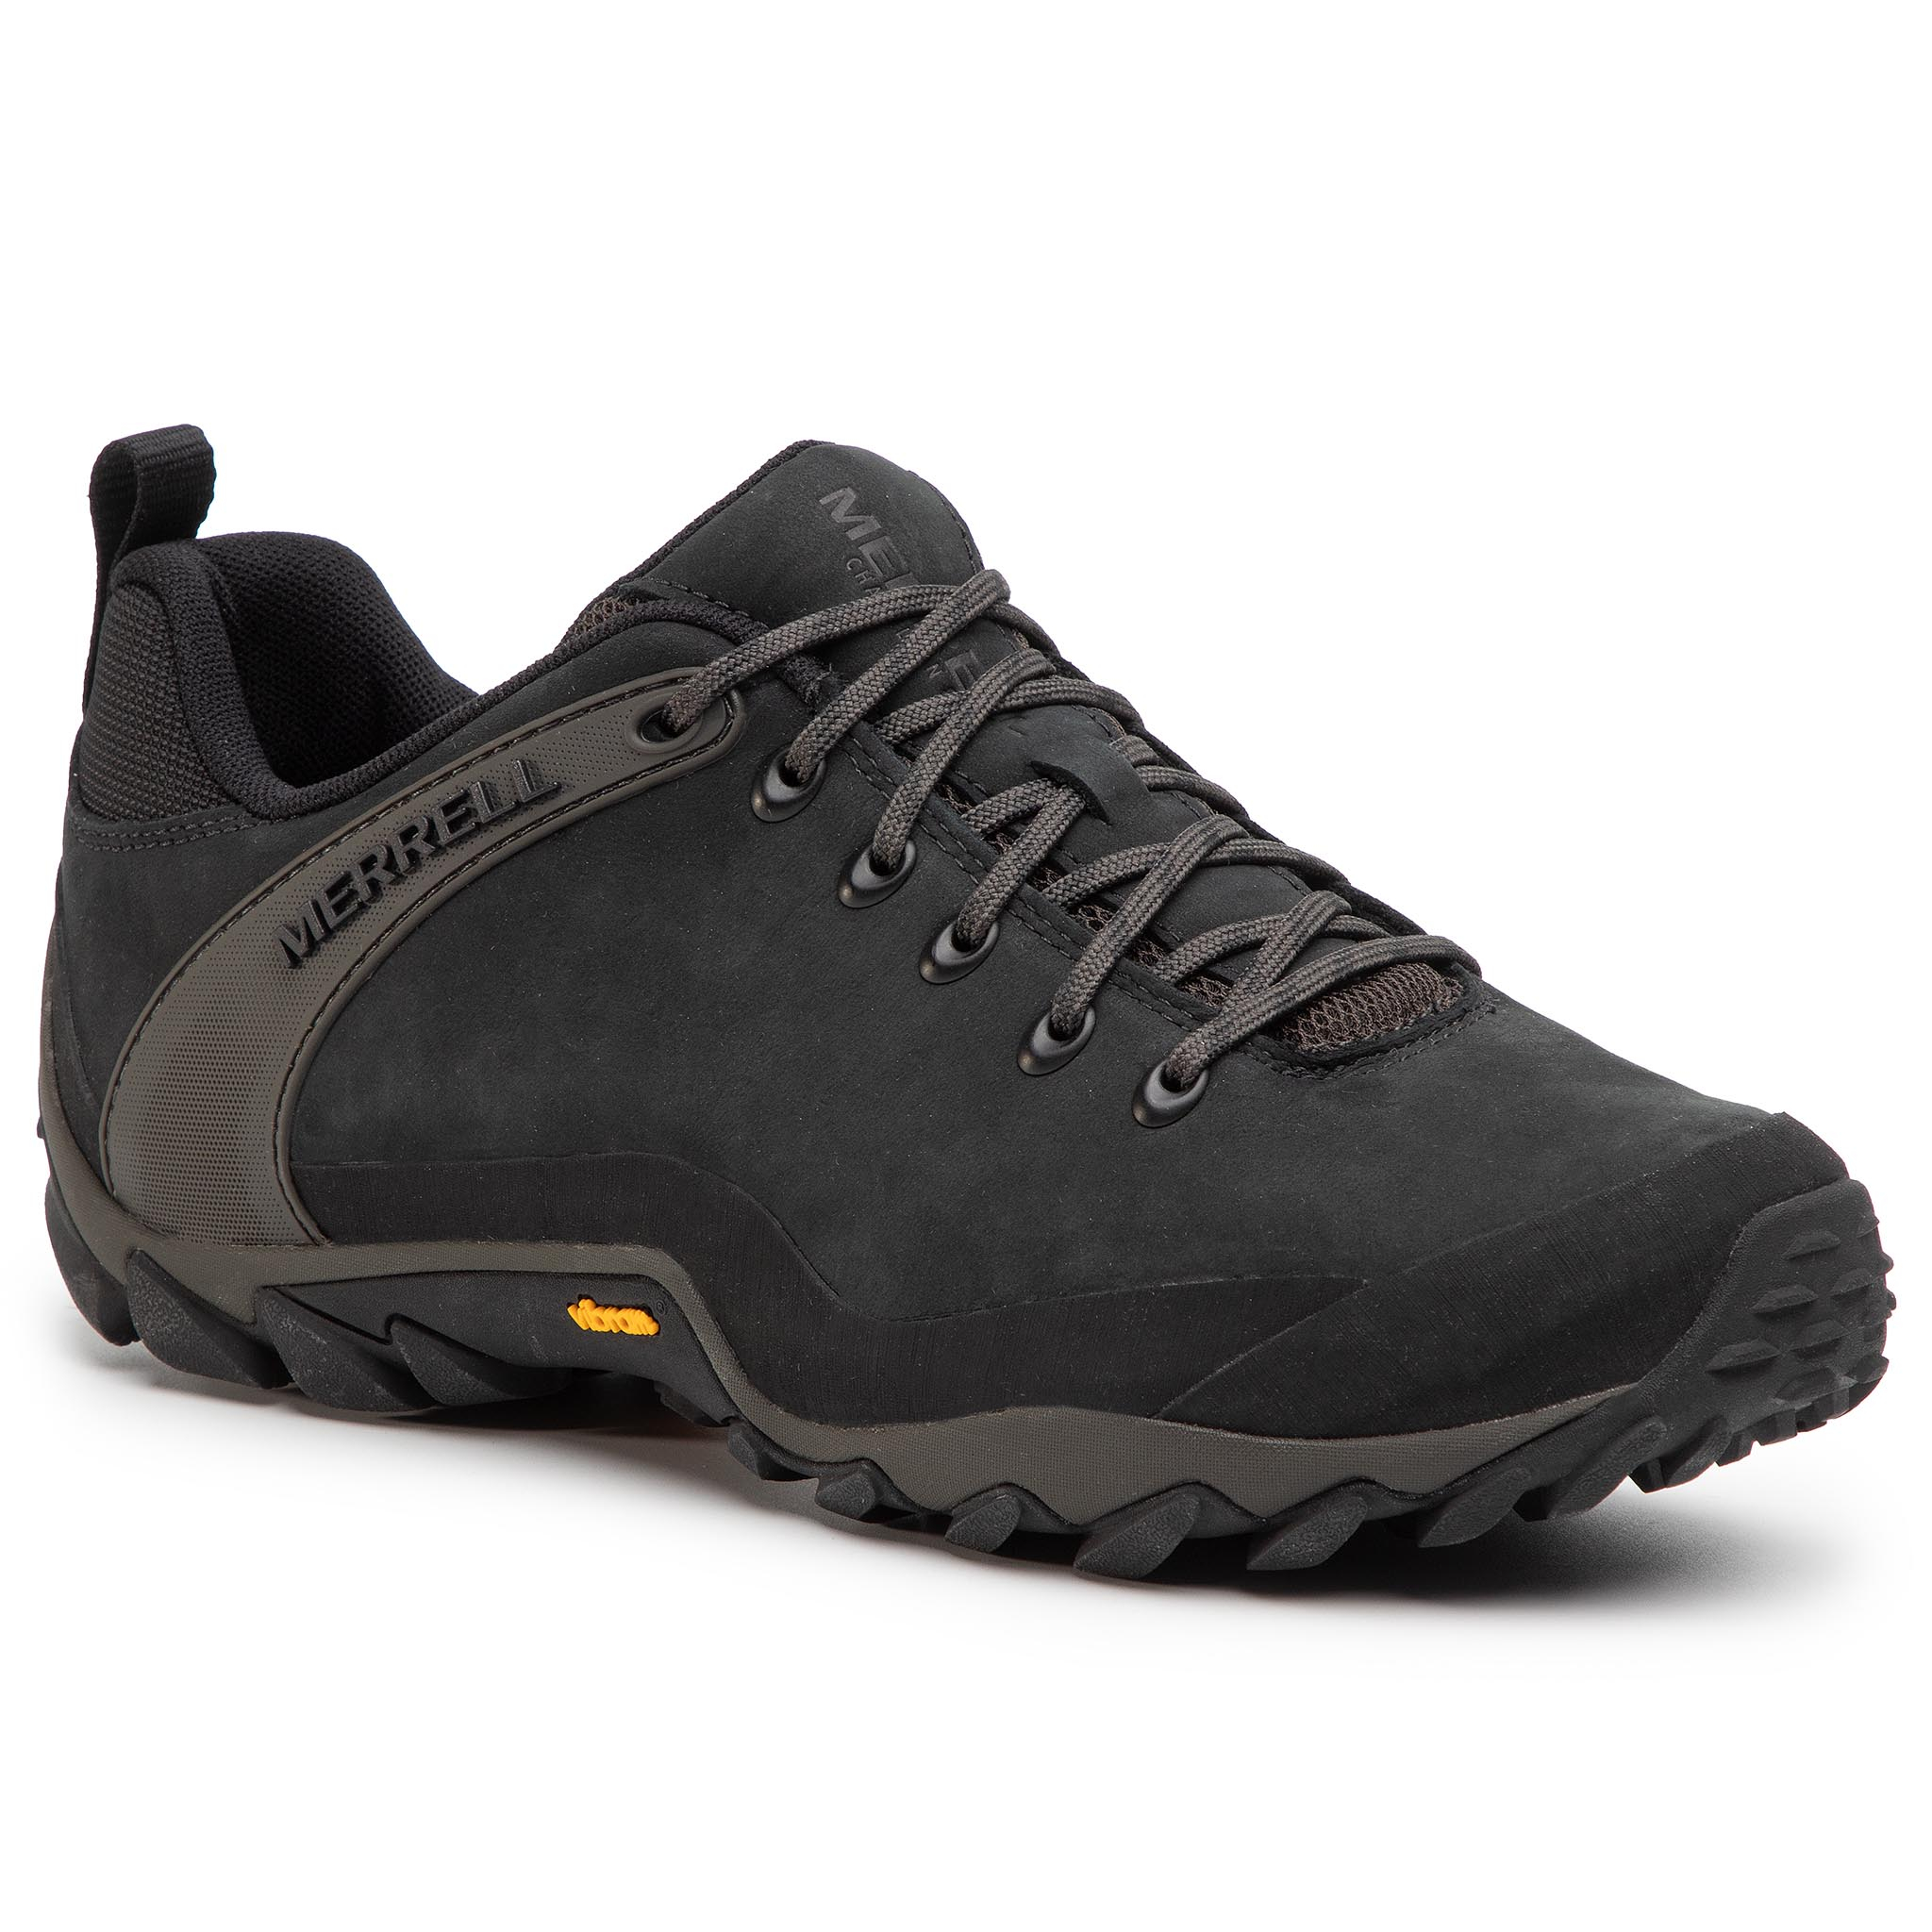 Trekkings Merrell - Cham 8 Ltr J033095 Black imagine epantofi.ro 2021